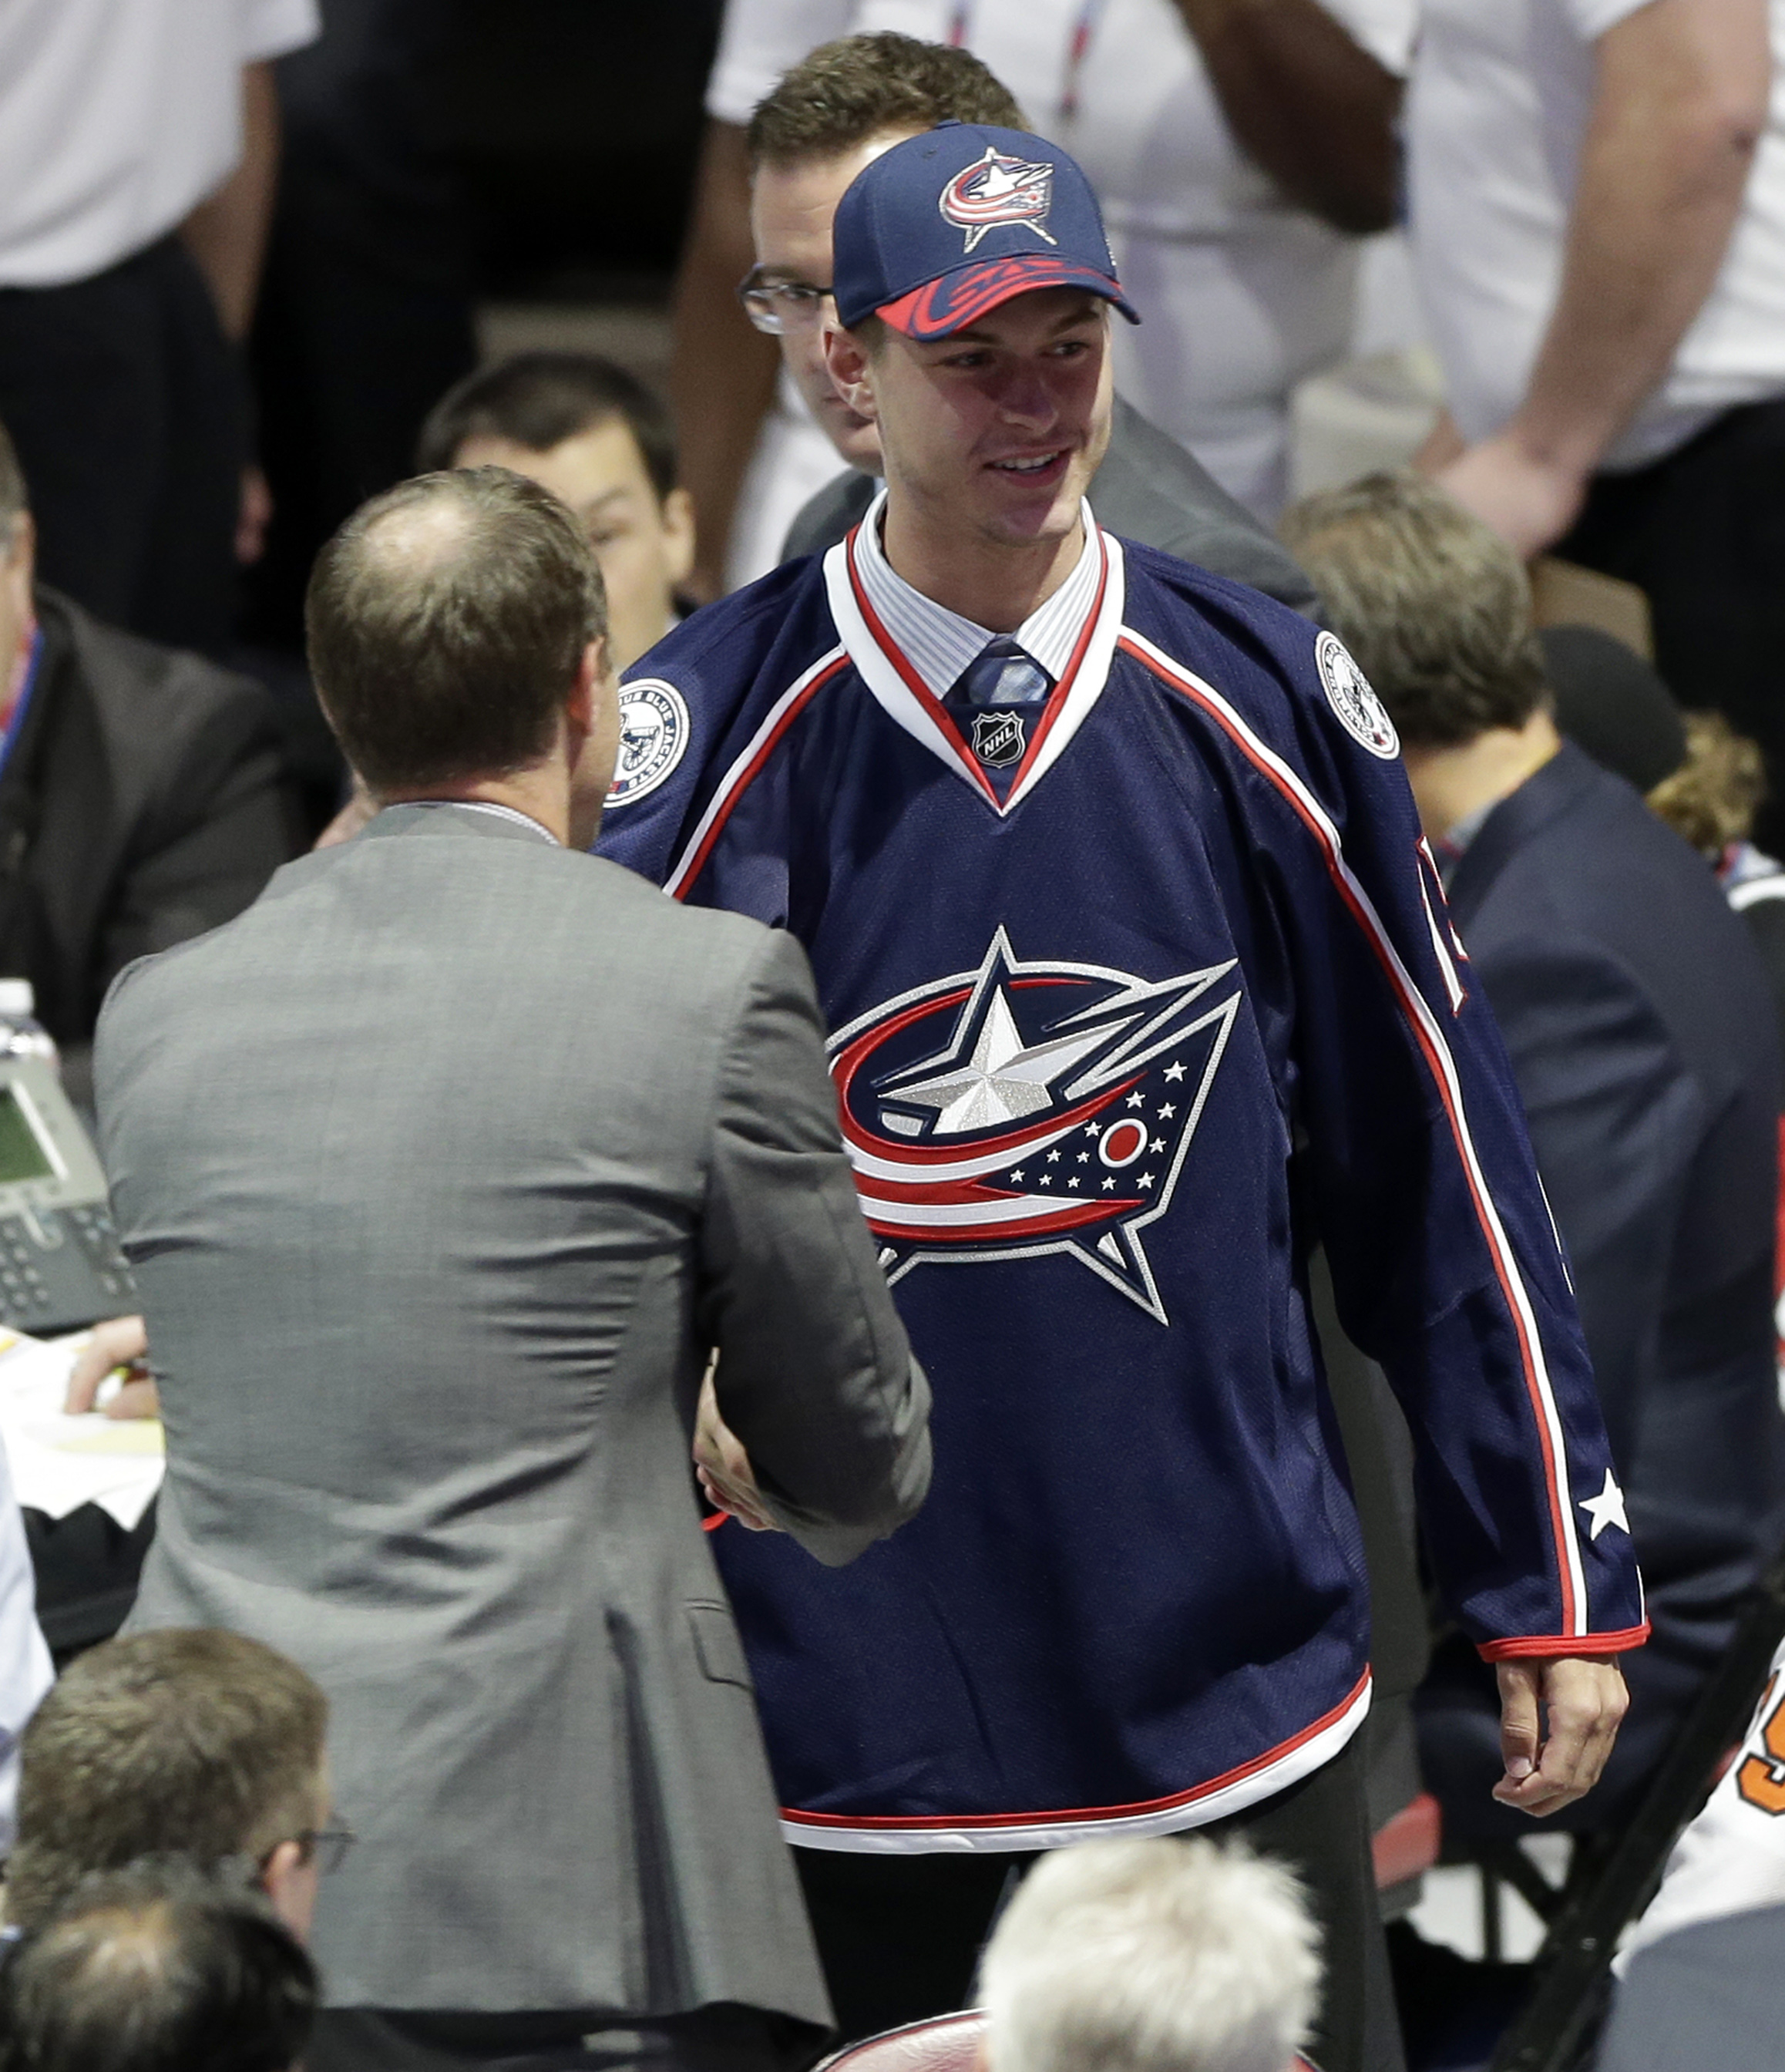 Paul Bittner, right, shakes hands with an executive after being chosen 38th overall by the Columbus Blue Jackets during the second round of the NHL hockey draft, Saturday, June 27, 2015, in Sunrise, Fla. (AP Photo/Alan Diaz)